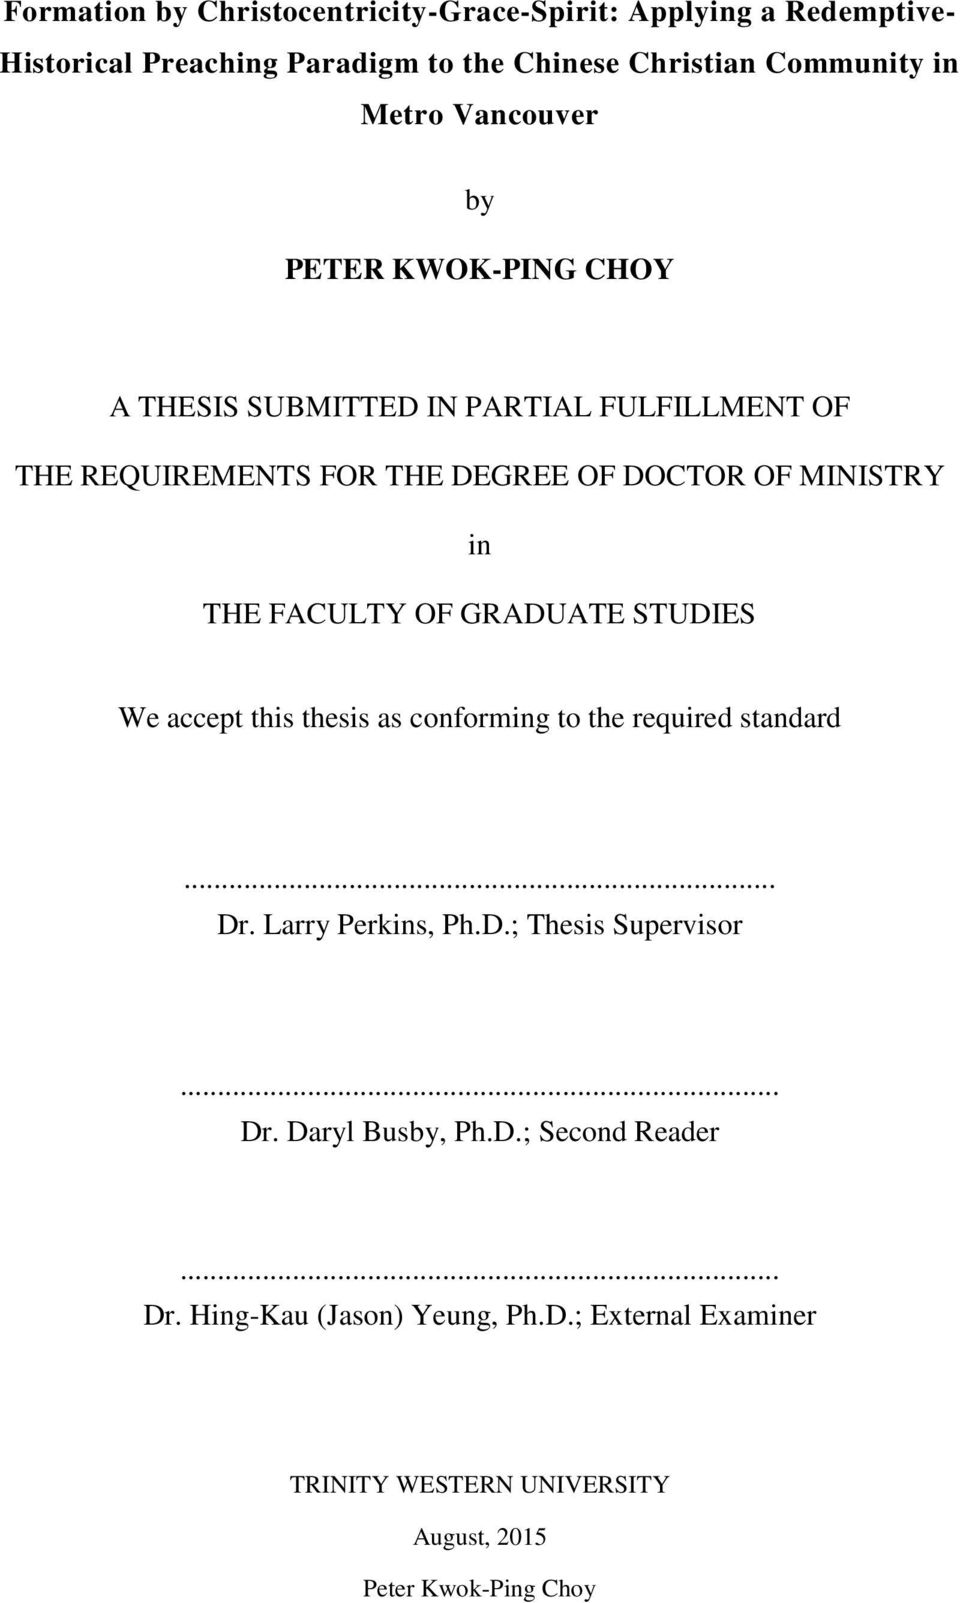 sample phd thesis in international relations